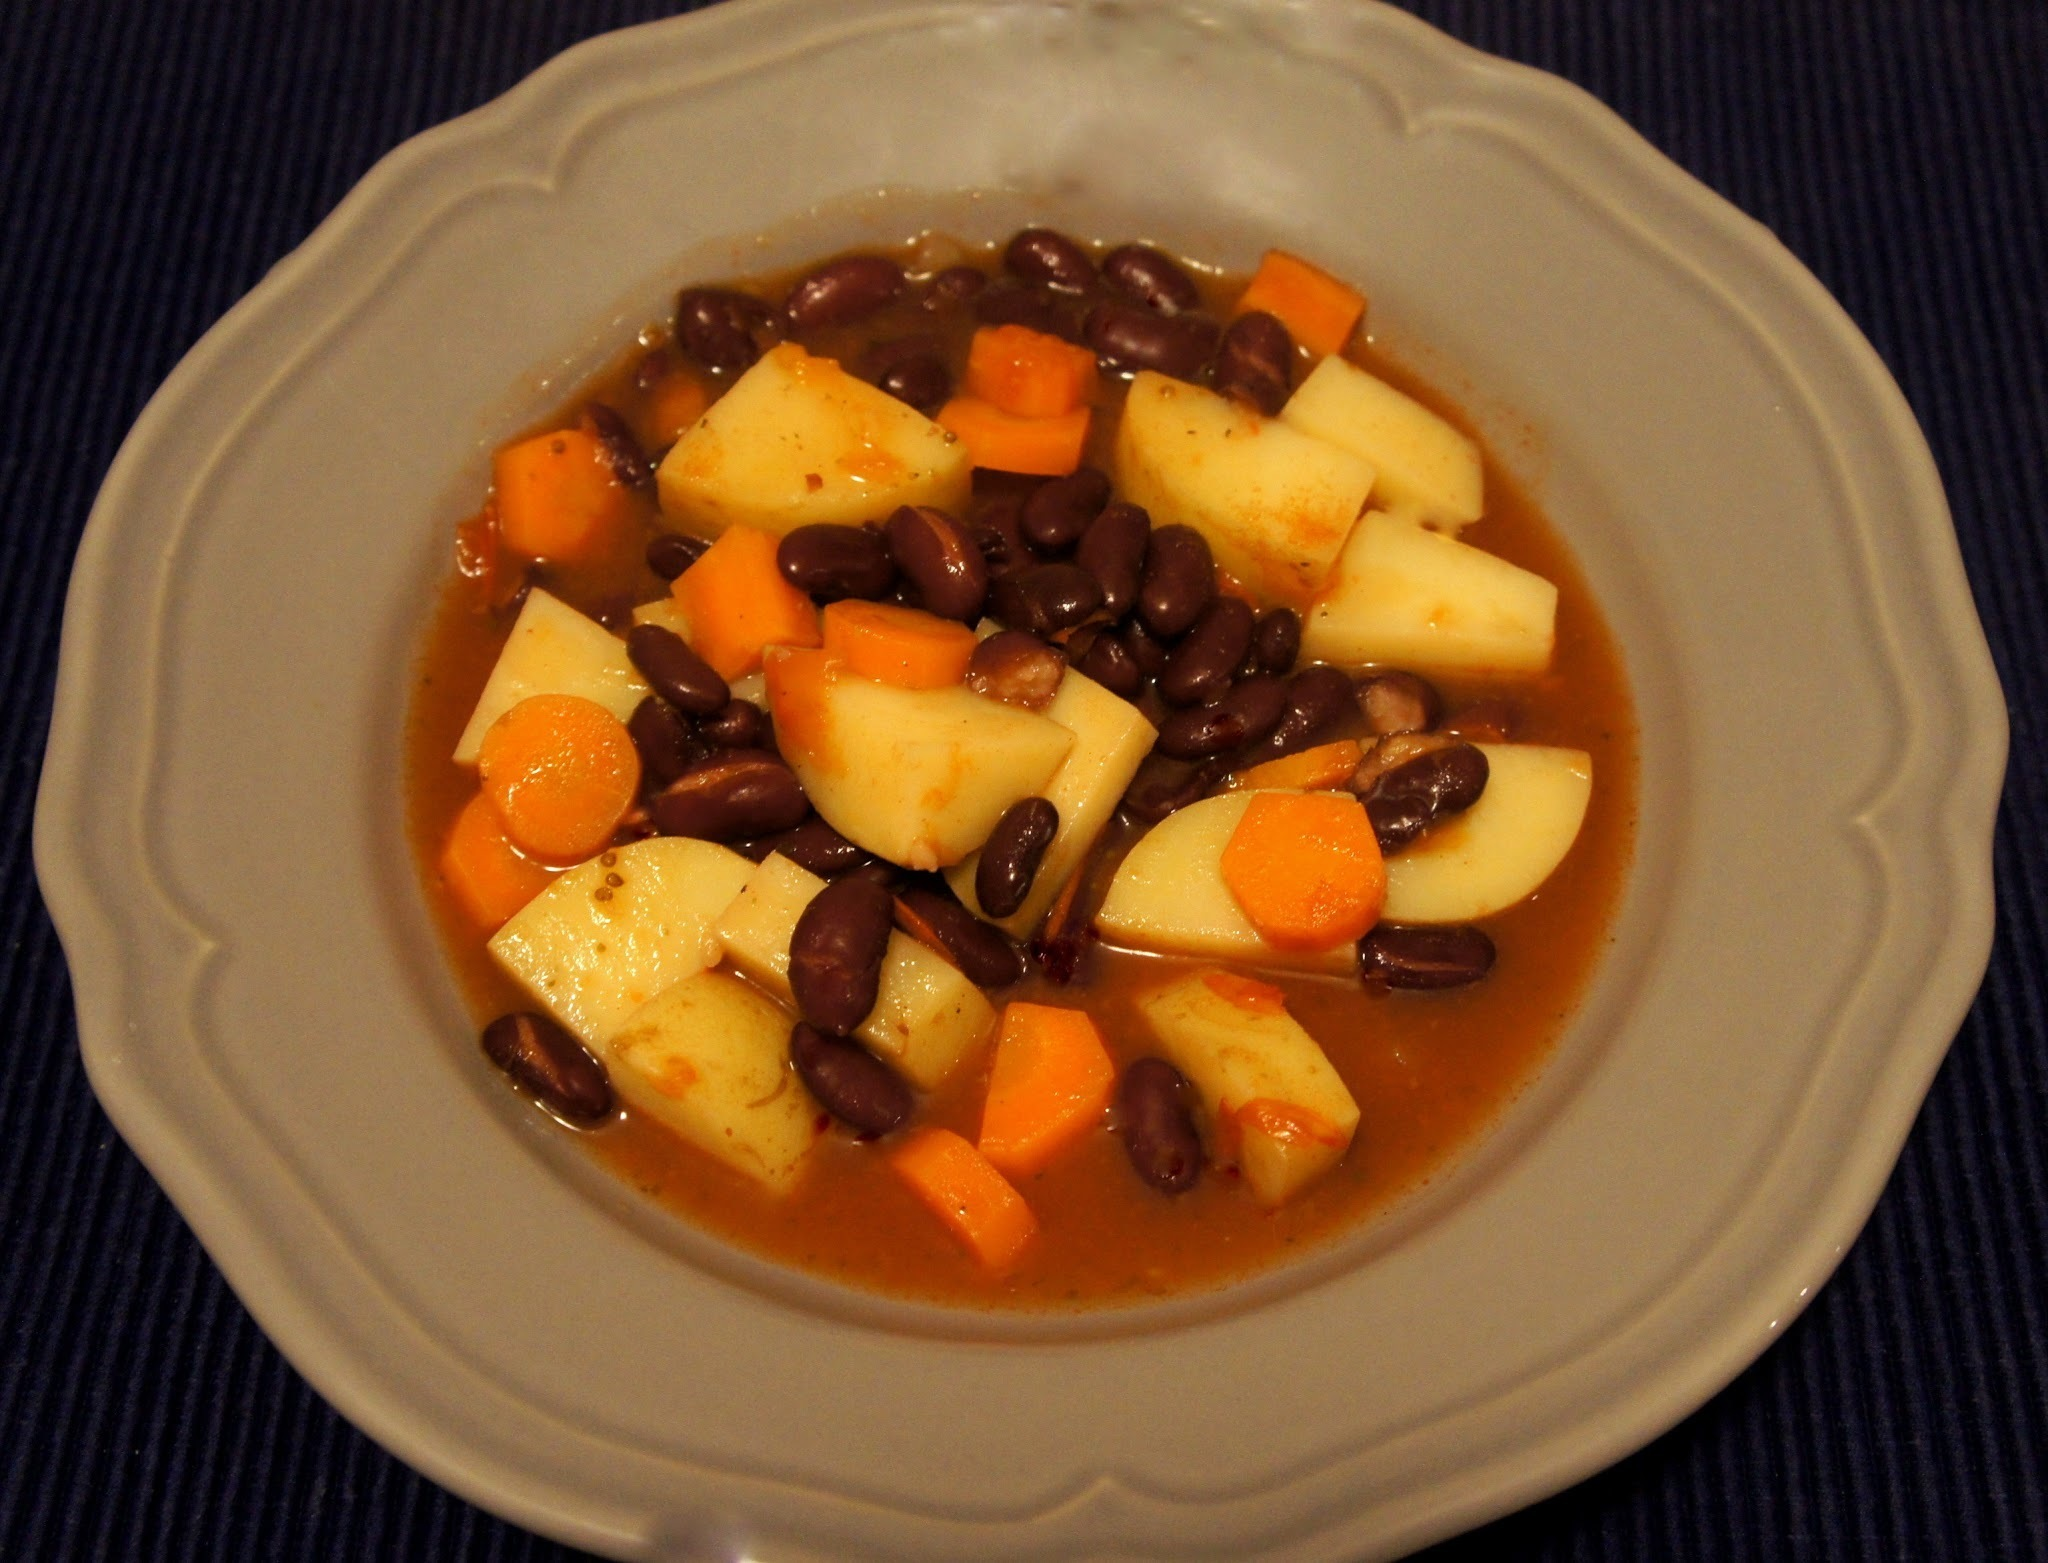 Winter vegetable and kidney bean stew